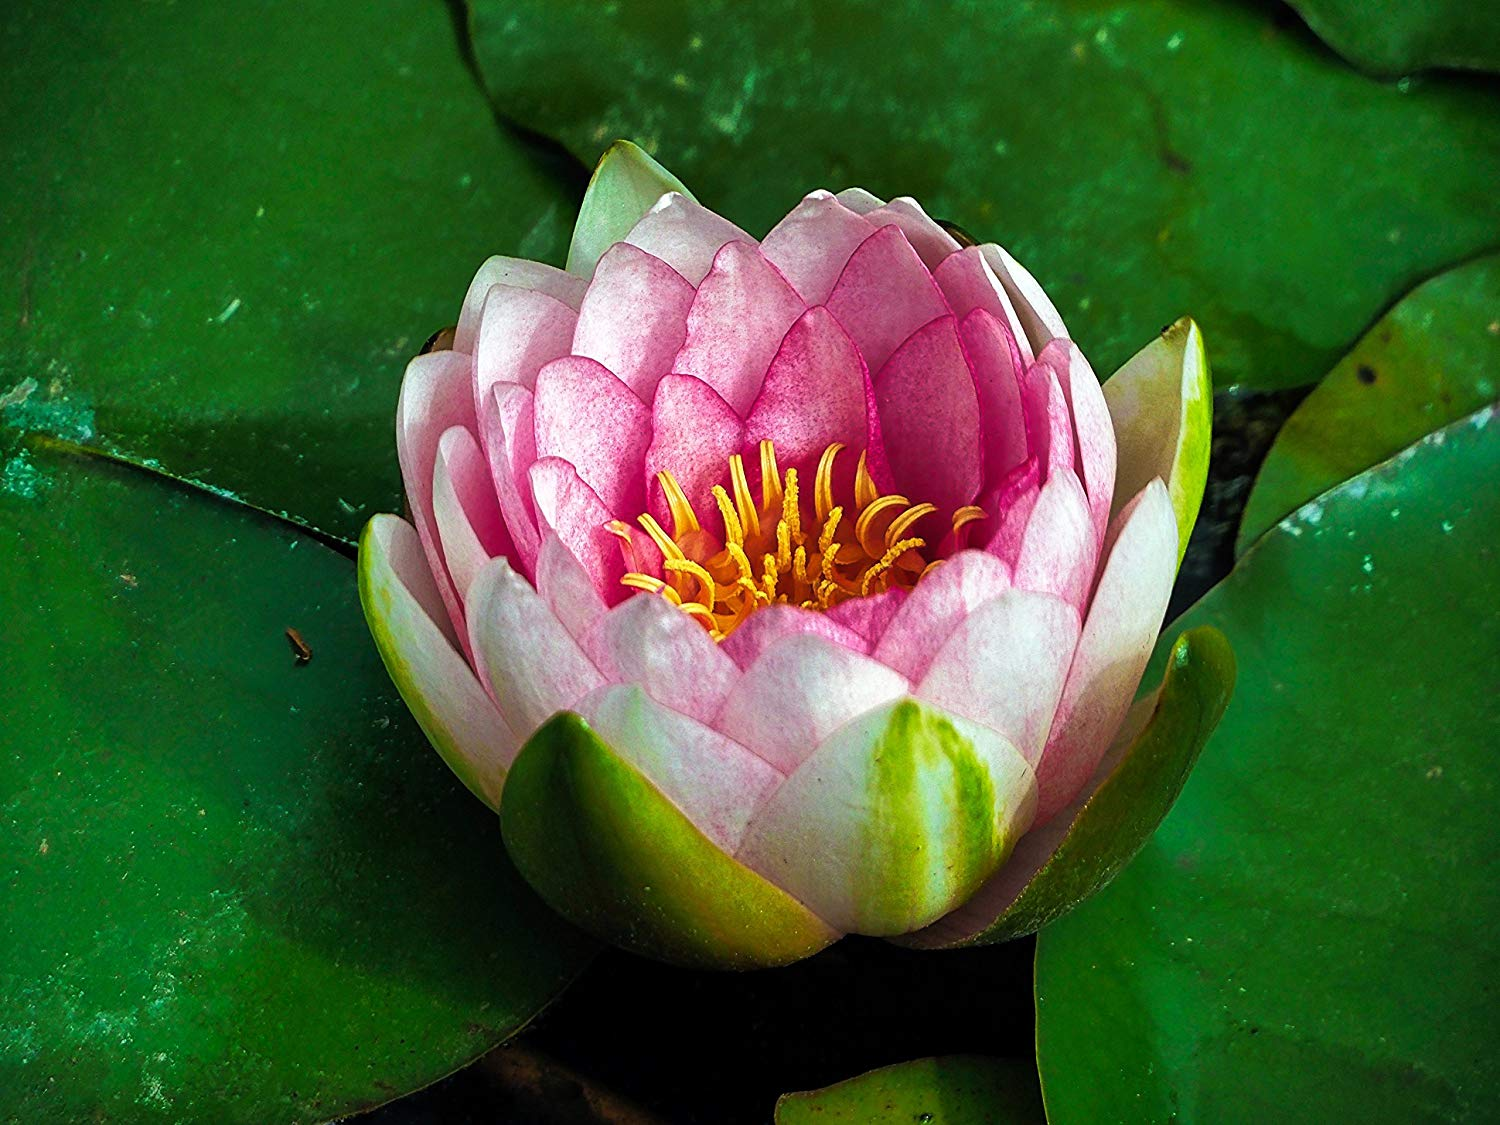 Lotus Flower Paper Print, Natural Vibrant Picture, Professional Photography Print, Summer Nature Wallpaper, Professional Prints, Photography